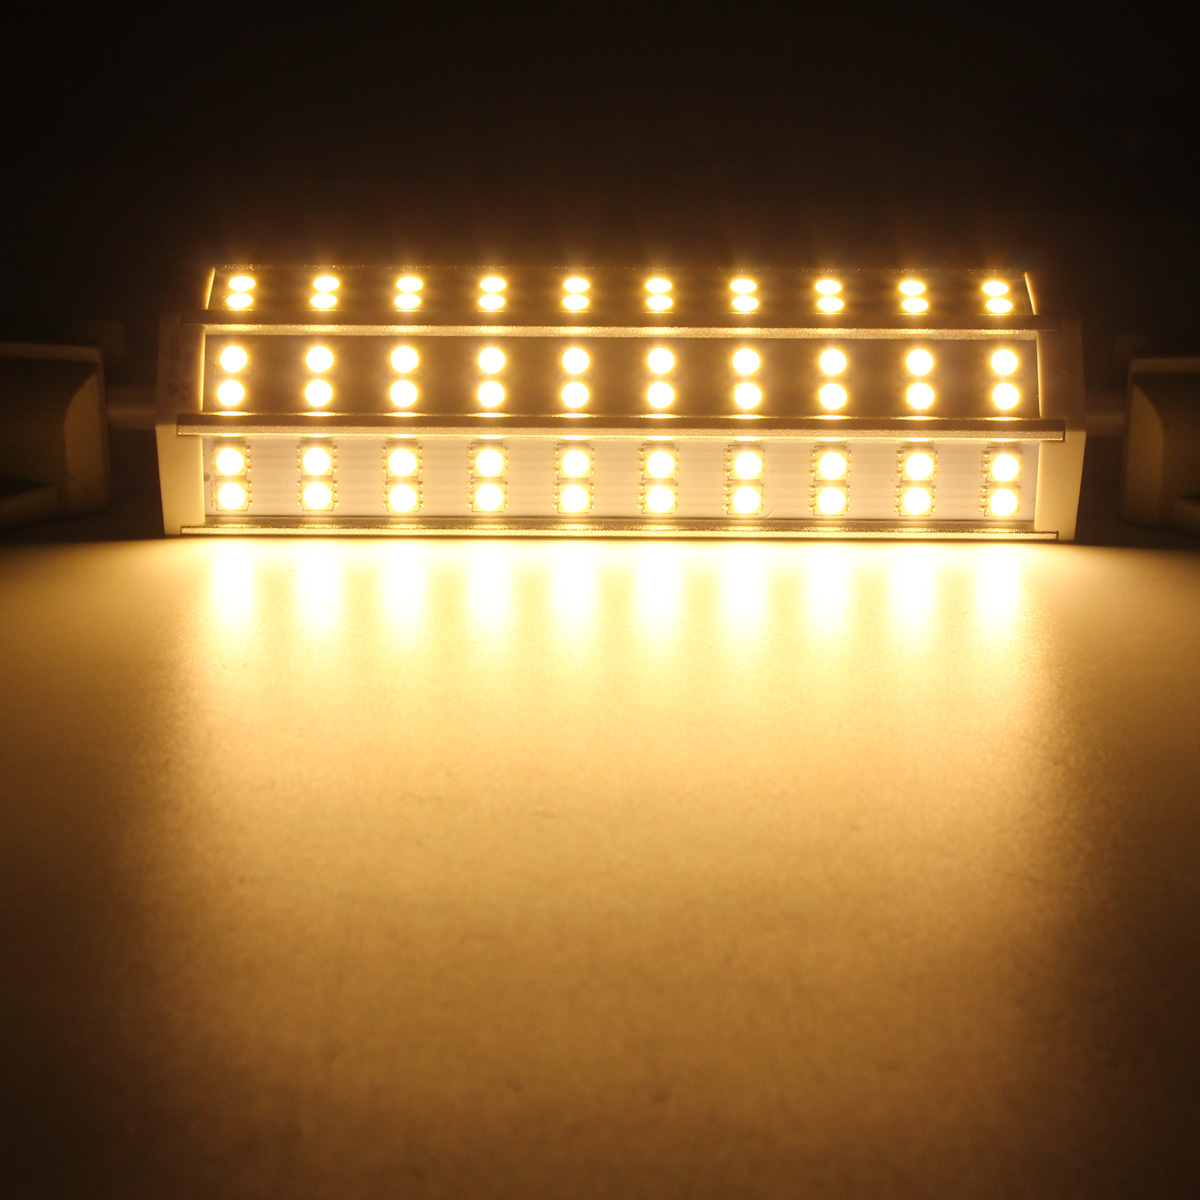 R7S 20W Dimmable Bright 60 SMD 5050 1800LM LED Bulb Flo